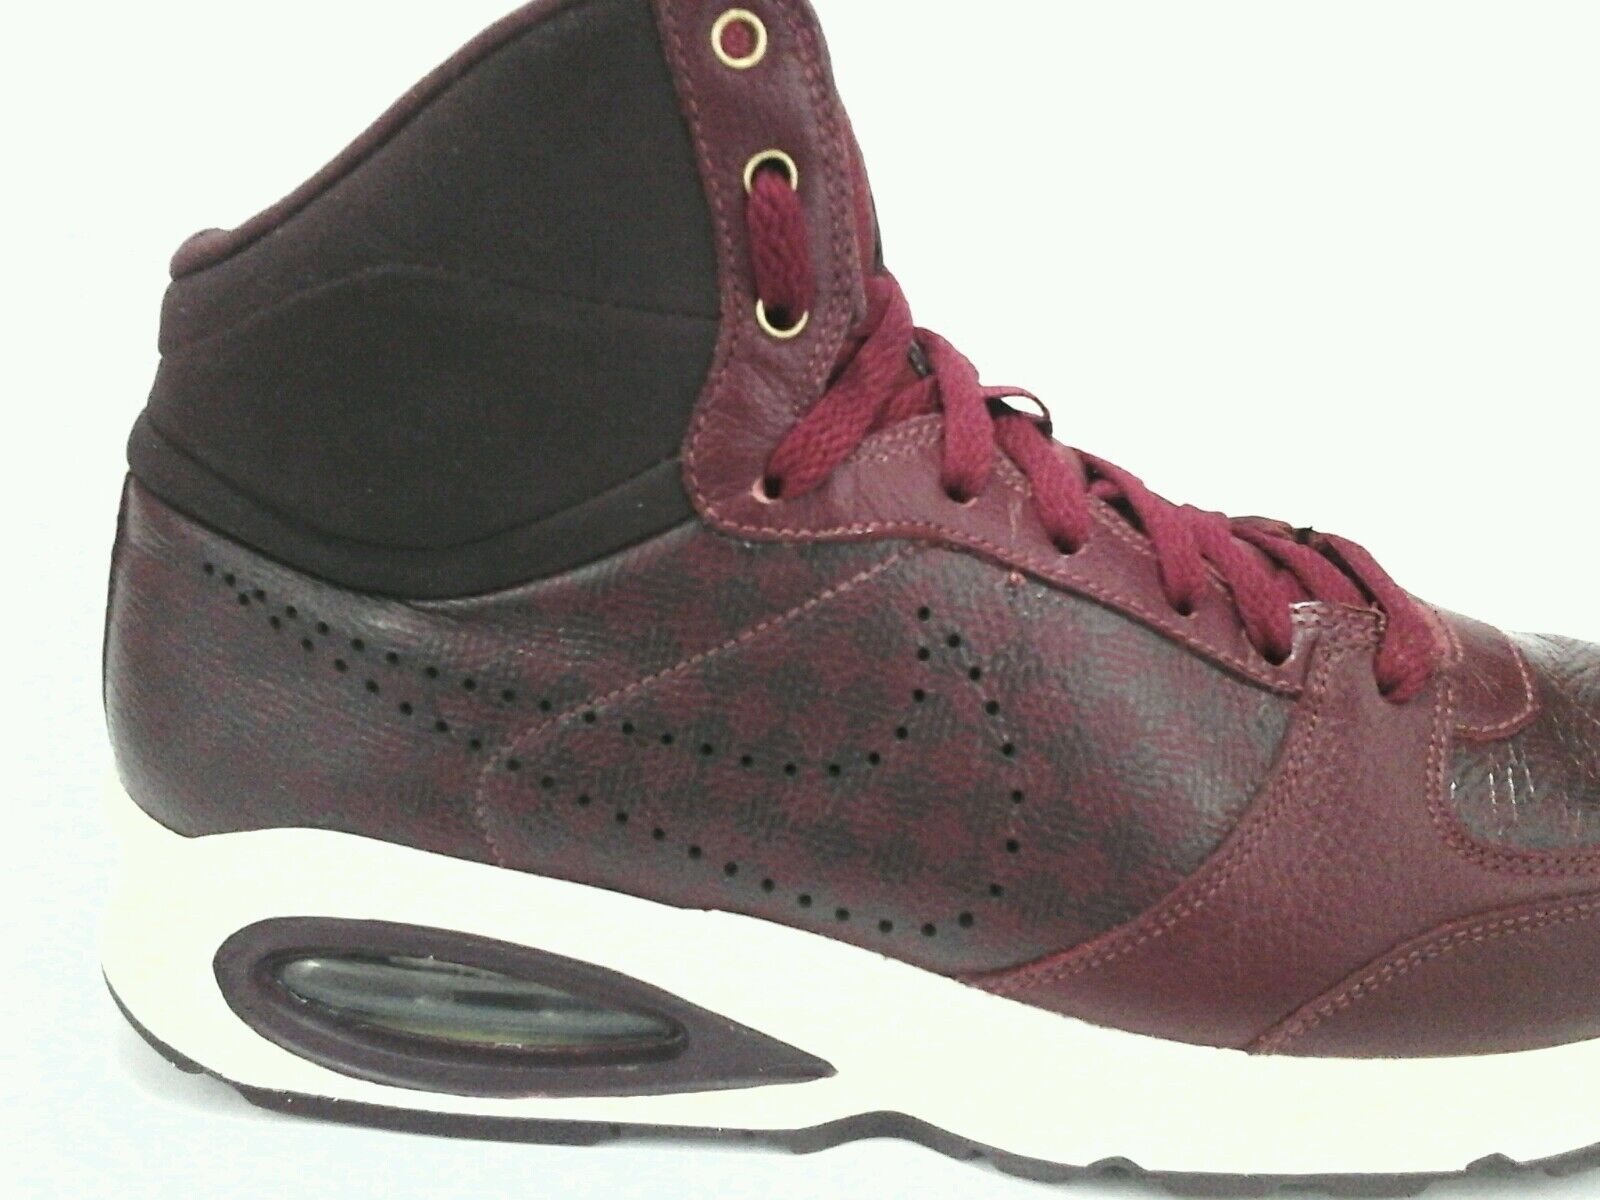 Details about Nike AIR MAX INTERNATIONAL Burgundy Red Shoes Men's US 9 UK 8 EUR 42.5 RARE